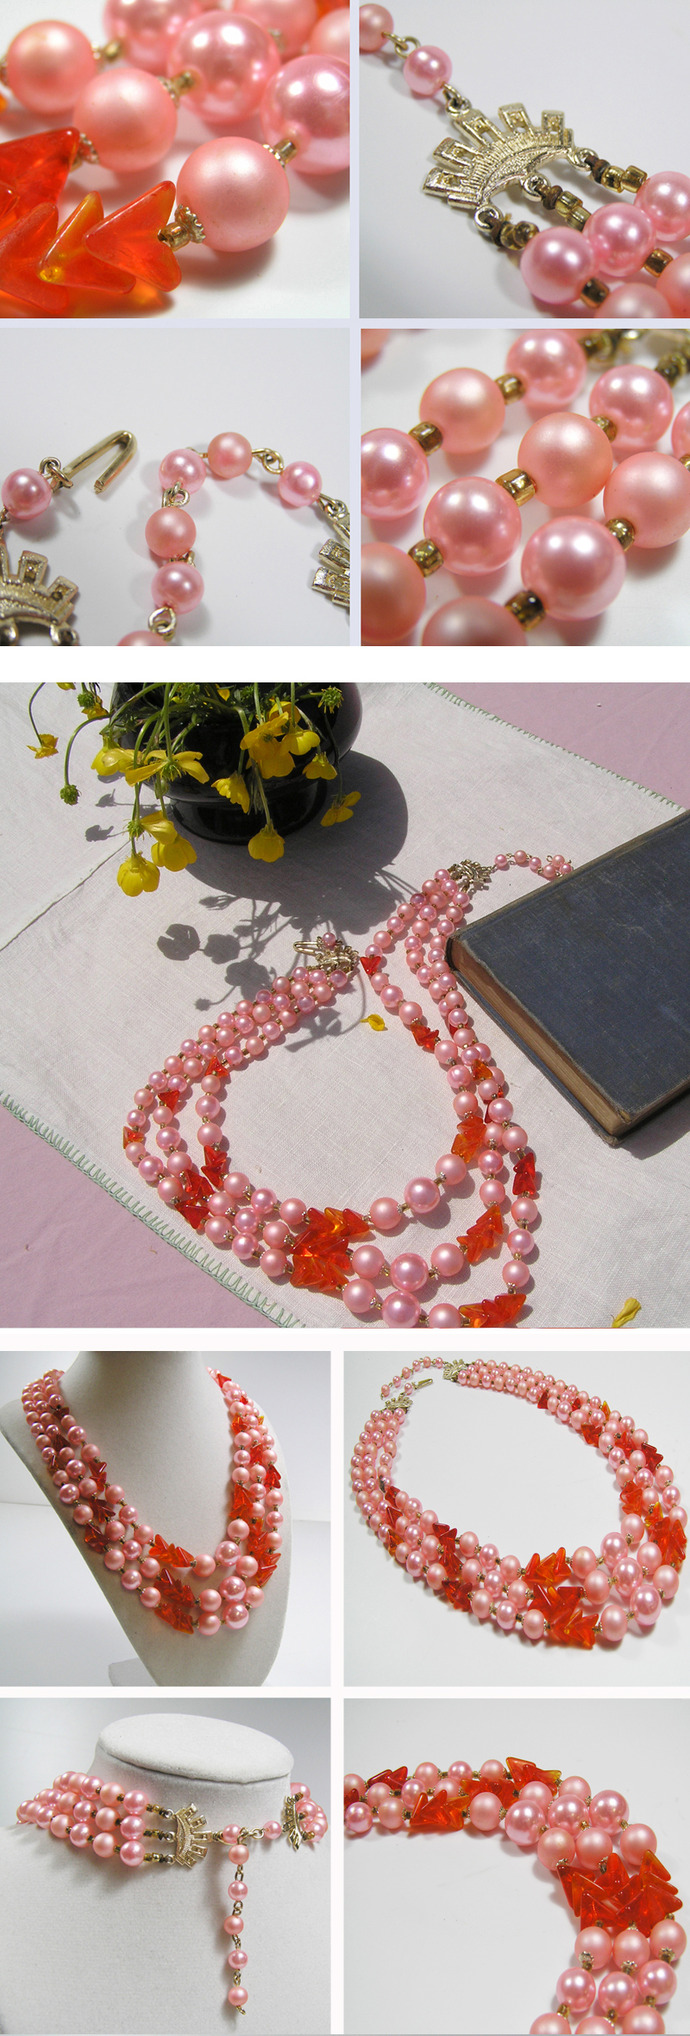 Vintage Pink pearls and orange beads necklace